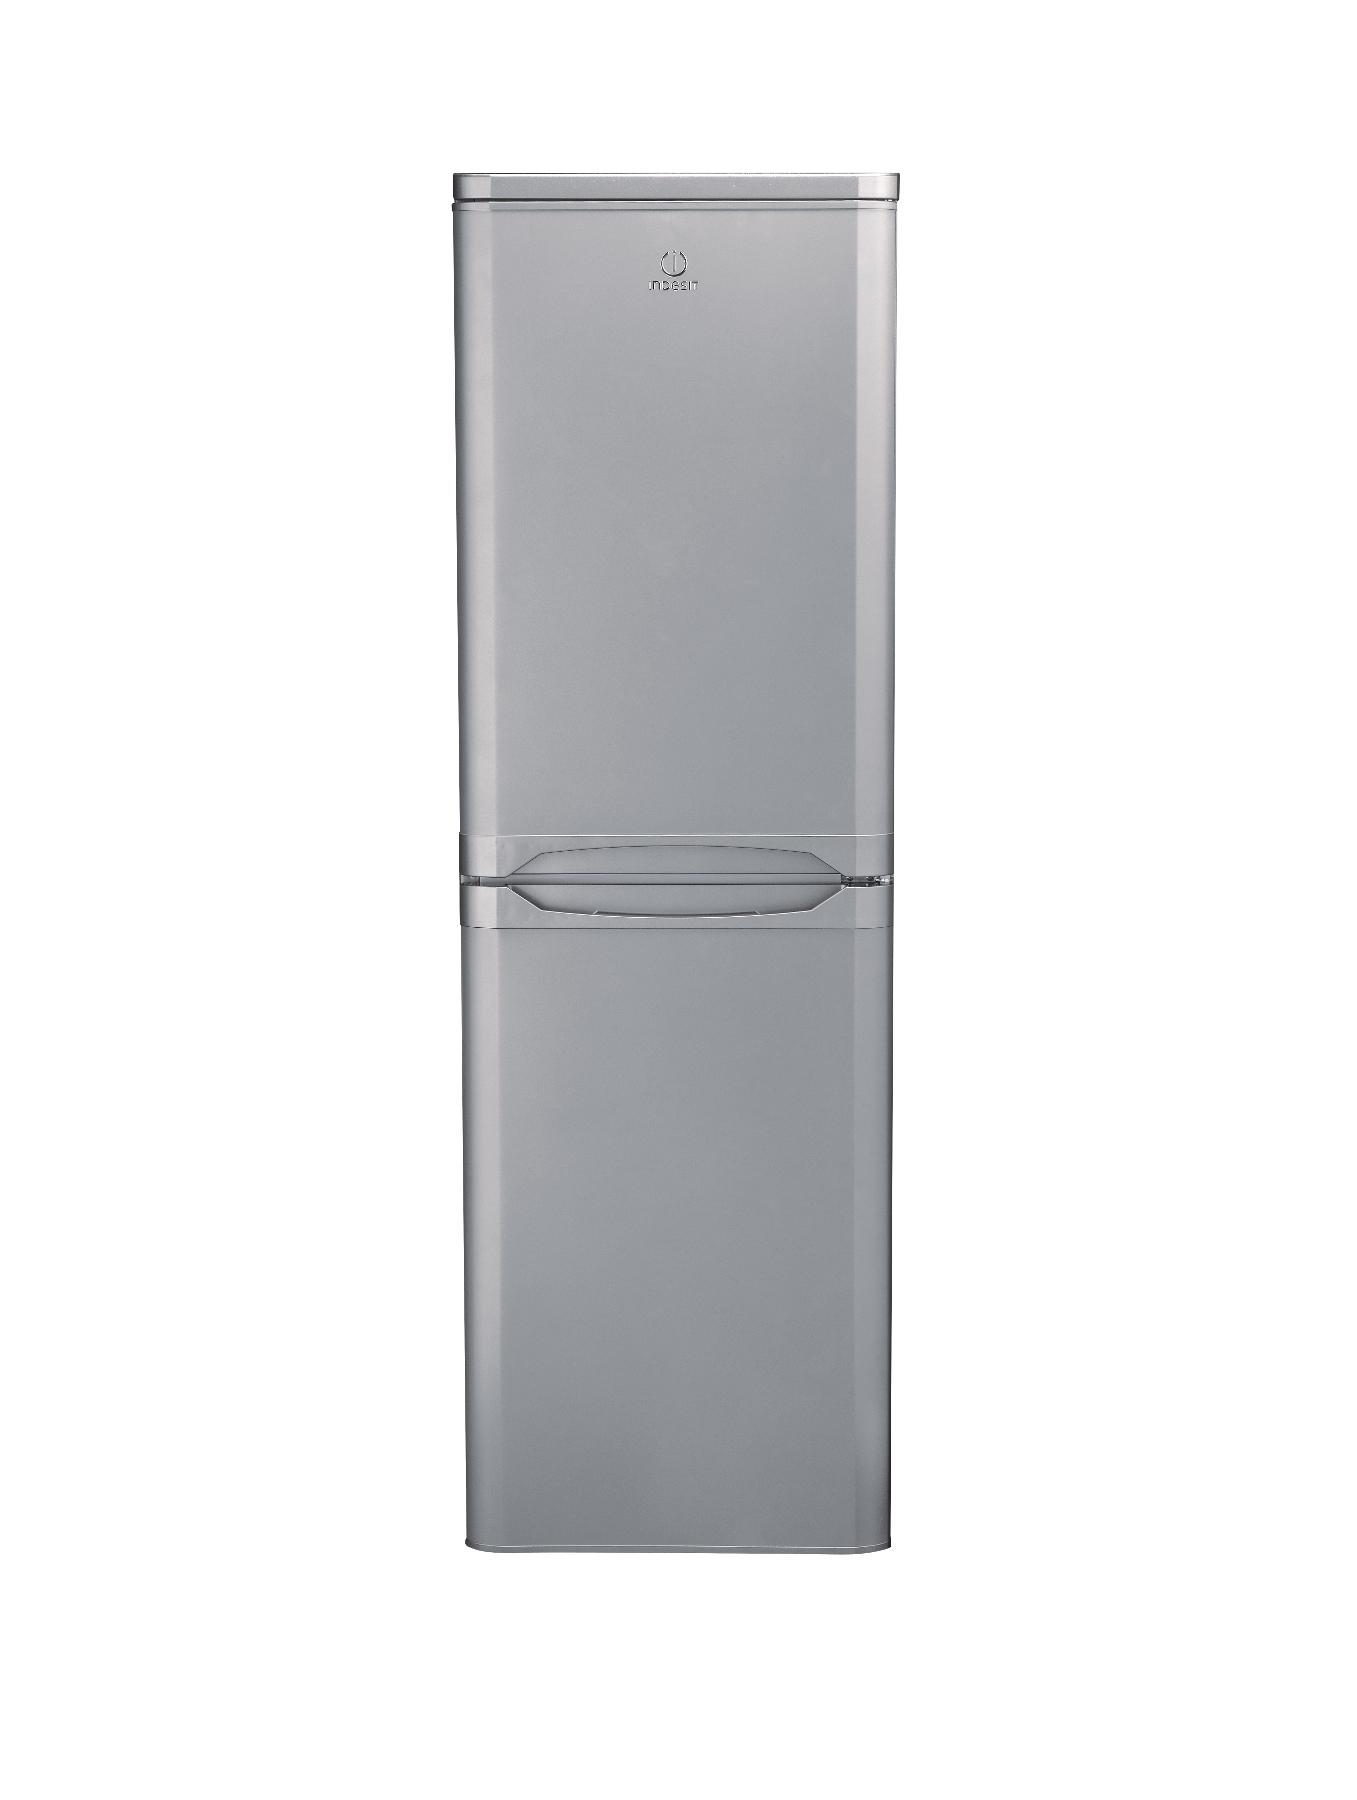 CAA55SI 55 cm Fridge Freezer - Silver